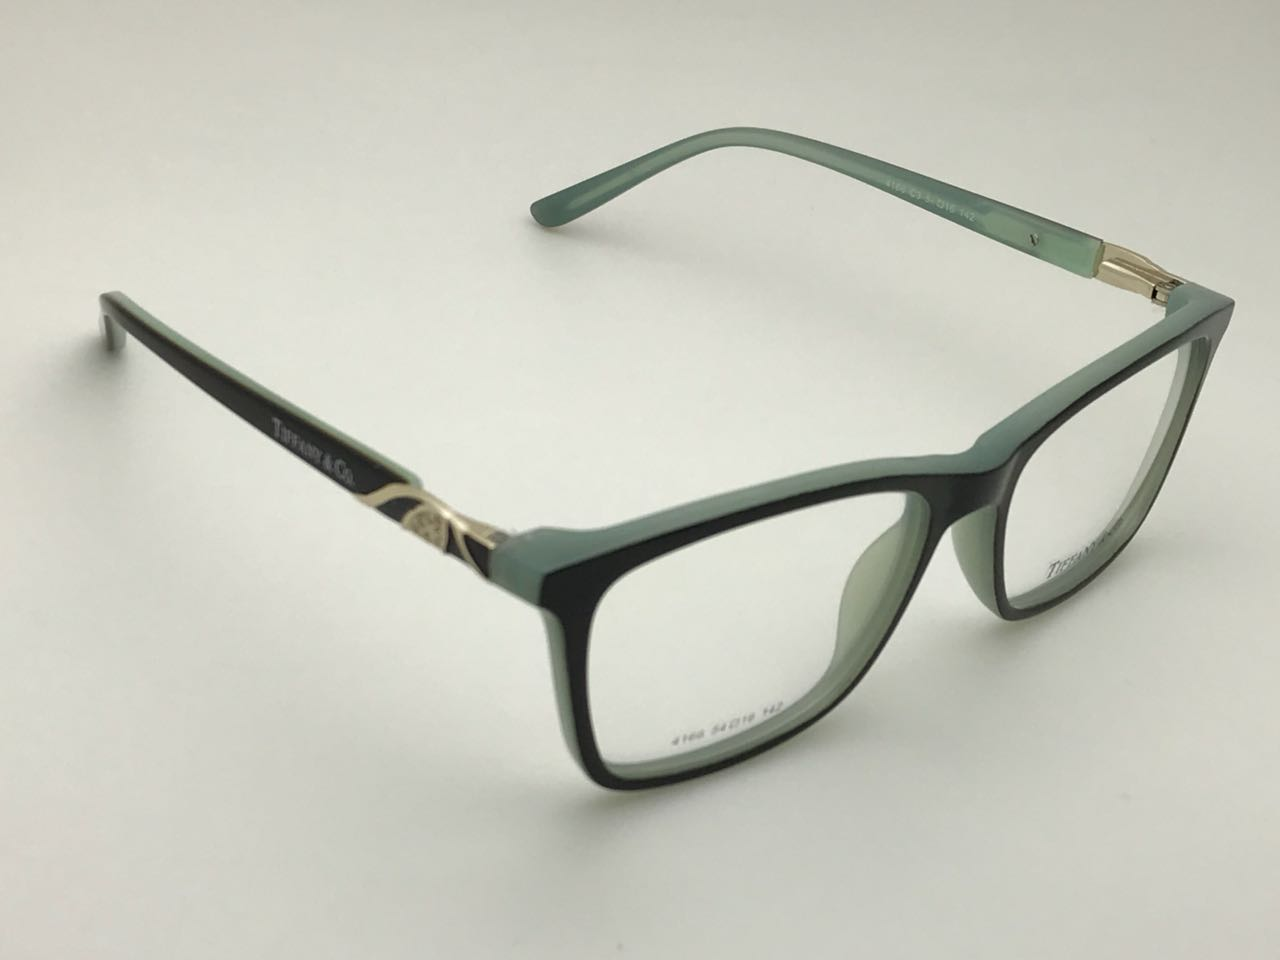 Tiffany & Co Eyeglass Frame – Rks wear